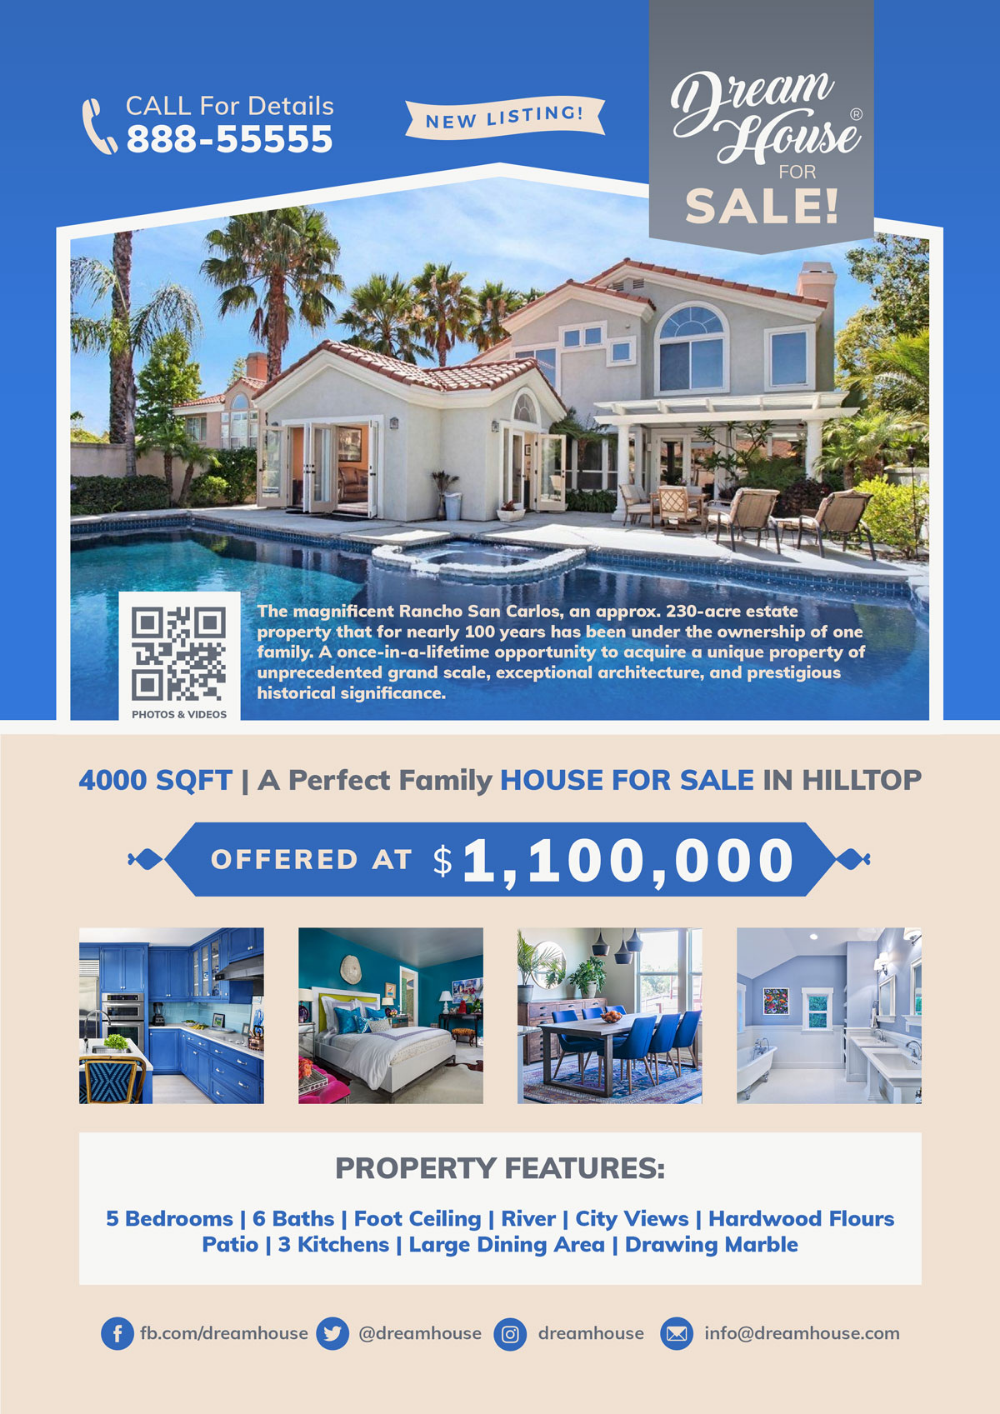 Free Real Estate House For Sale Flyer Template In Psd Real Estate Houses Sale Flyer Real Estate Flyers